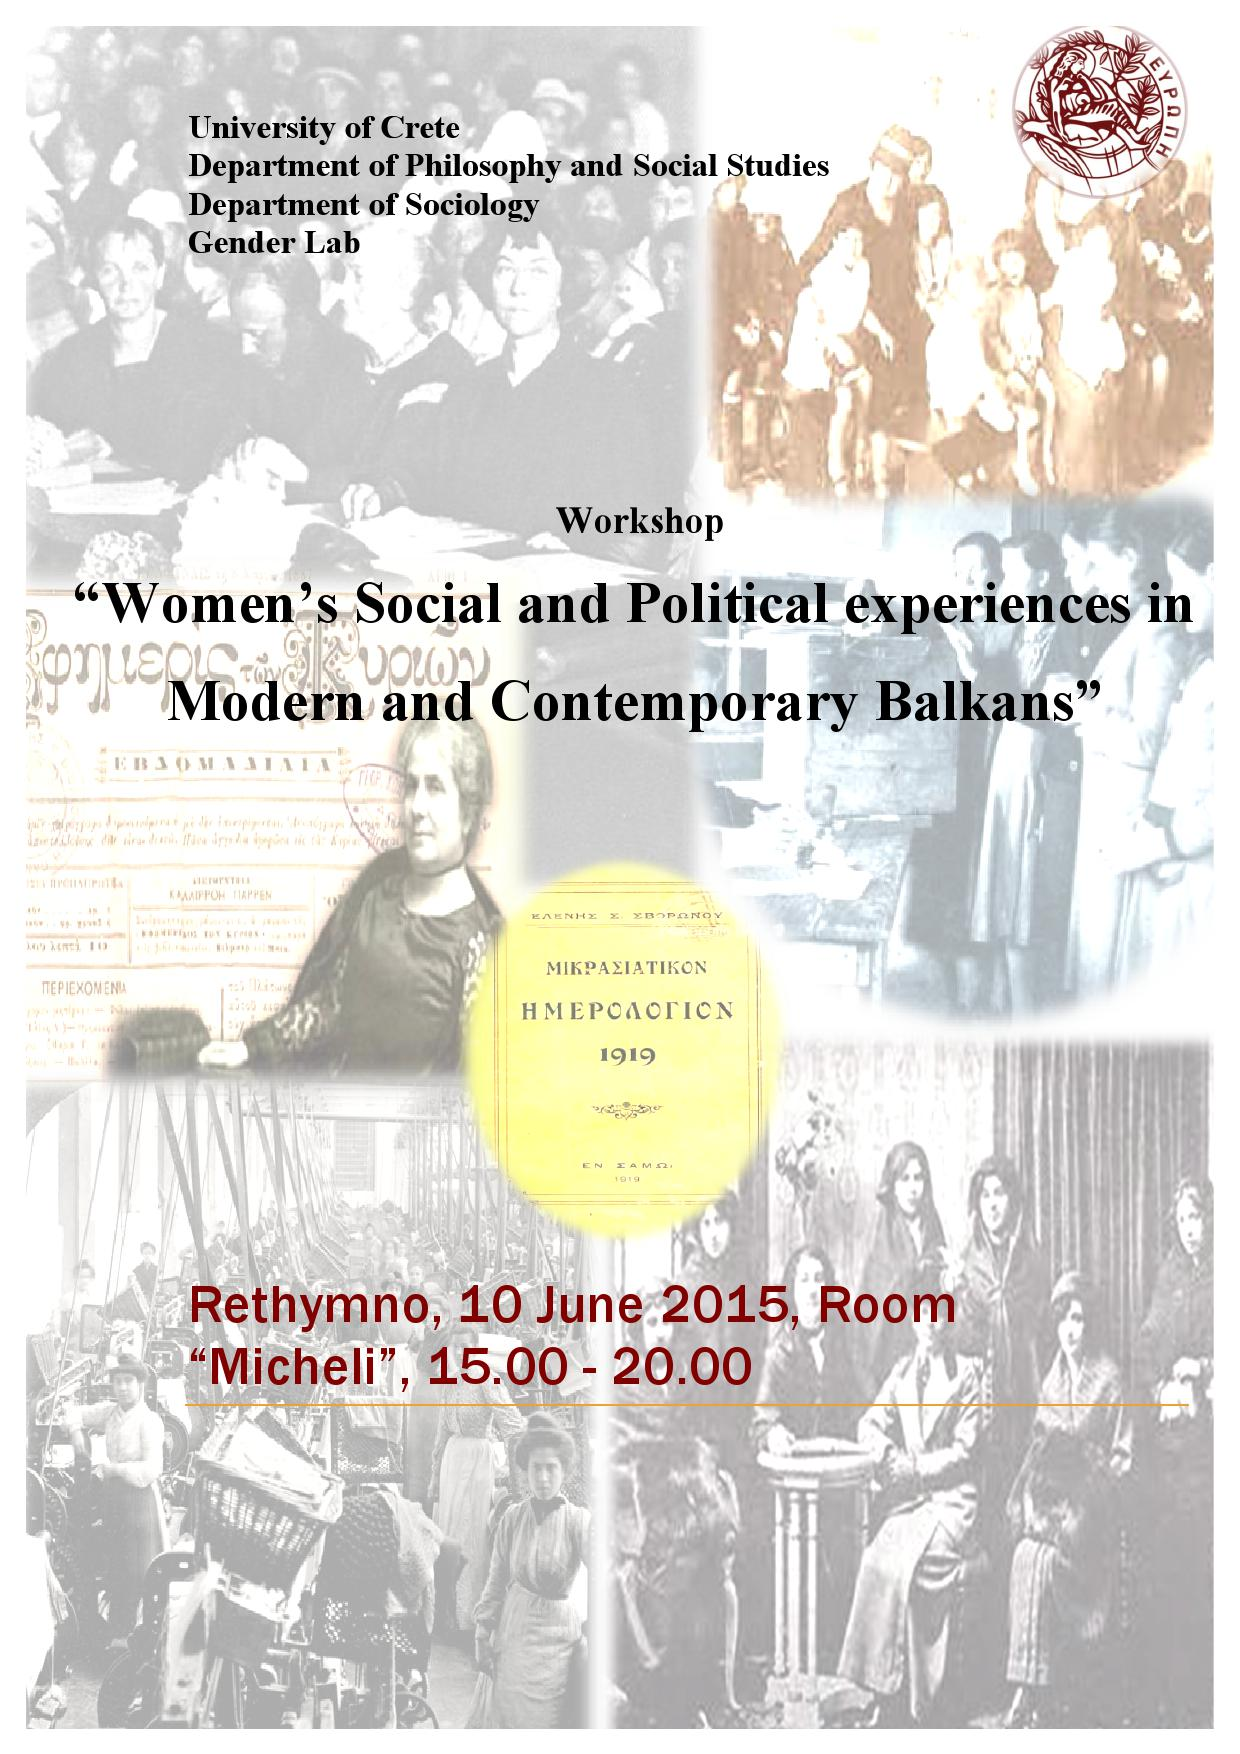 Women's Social and Political experiences in Modern and Contemporary Balkans